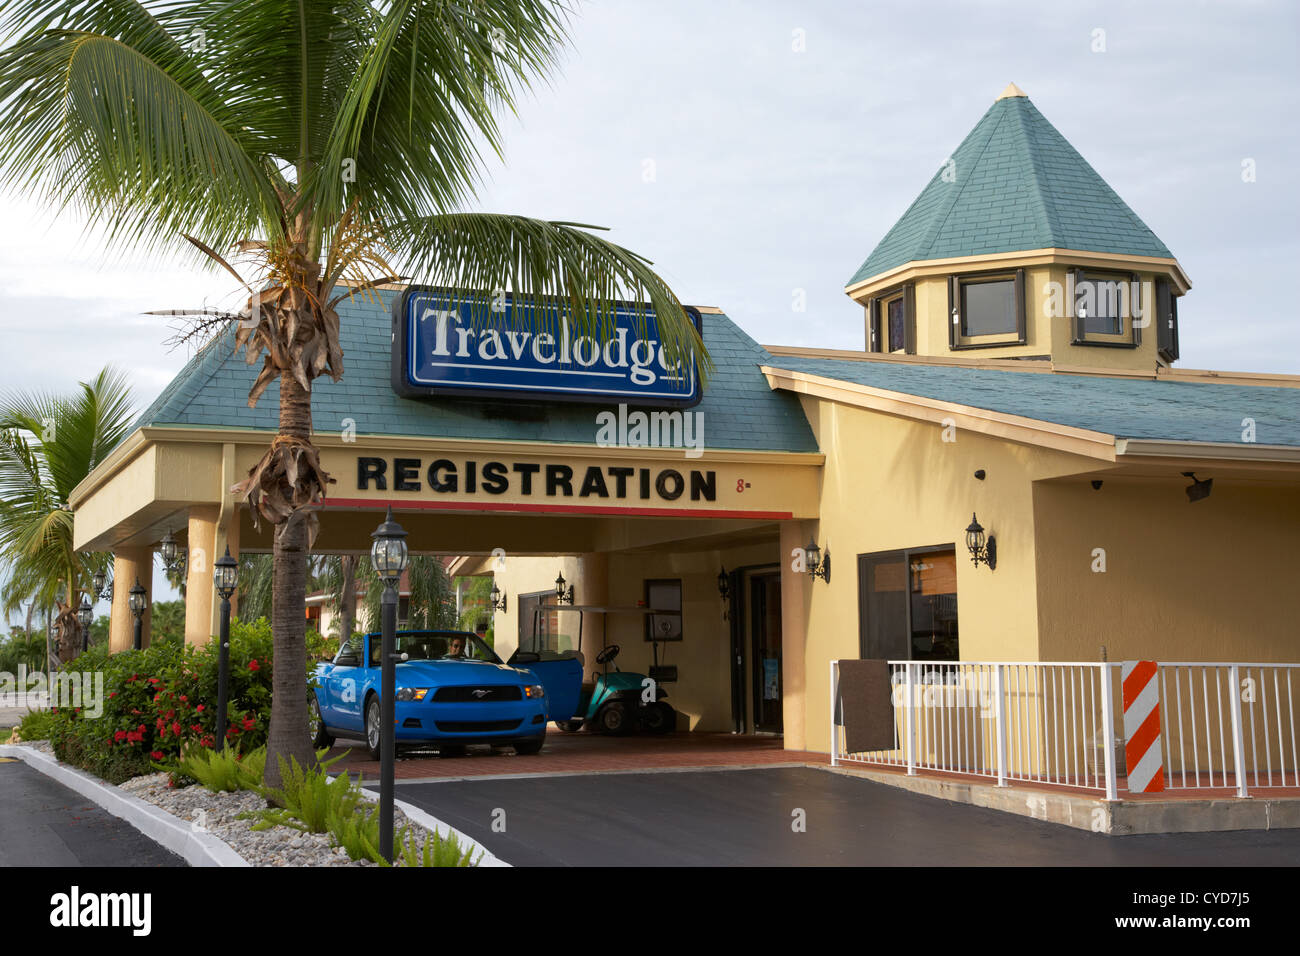 car in travelodge motel registration area homestead florida city usa - Stock Image